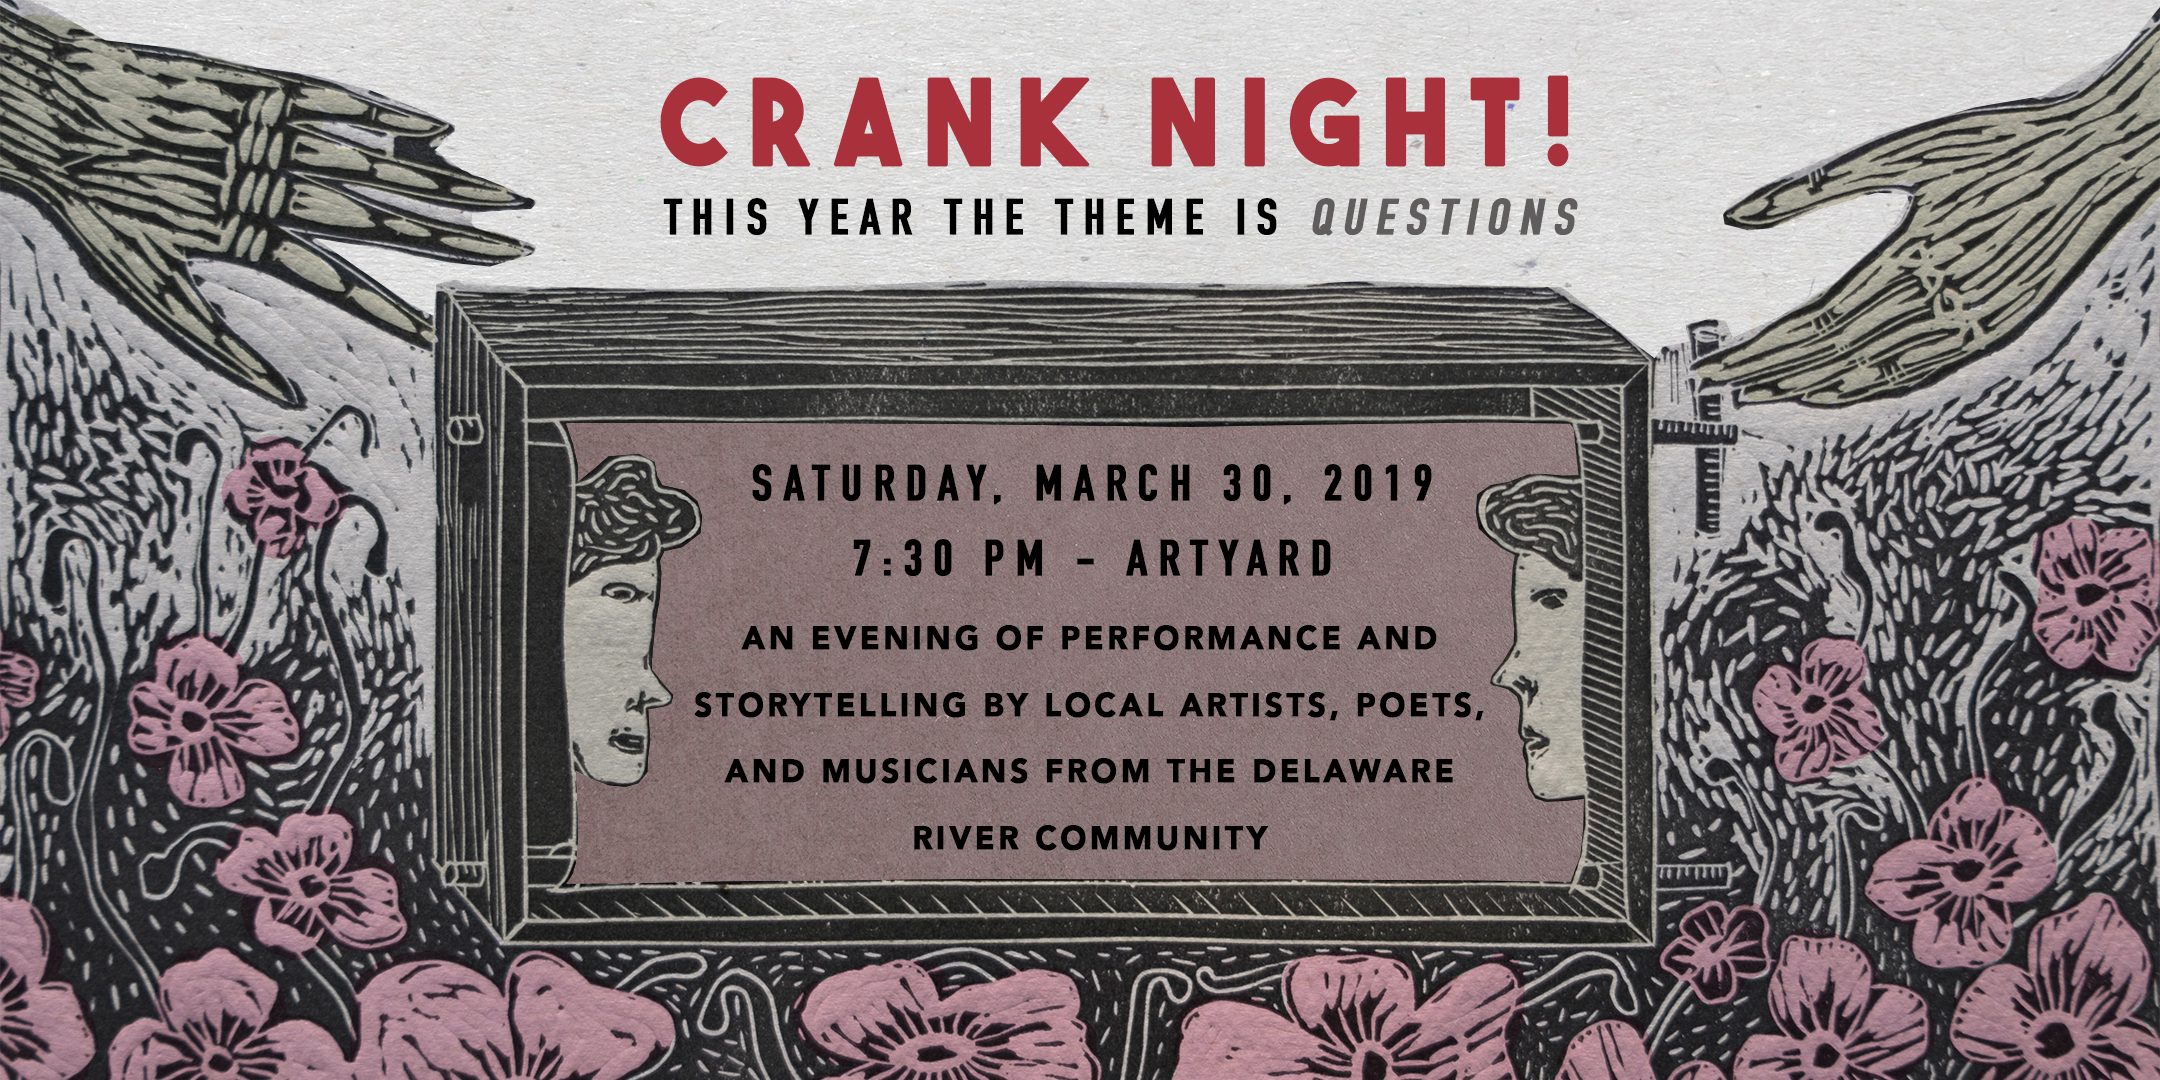 Crank Night! @ ArtYard's Theater | Frenchtown | New Jersey | United States